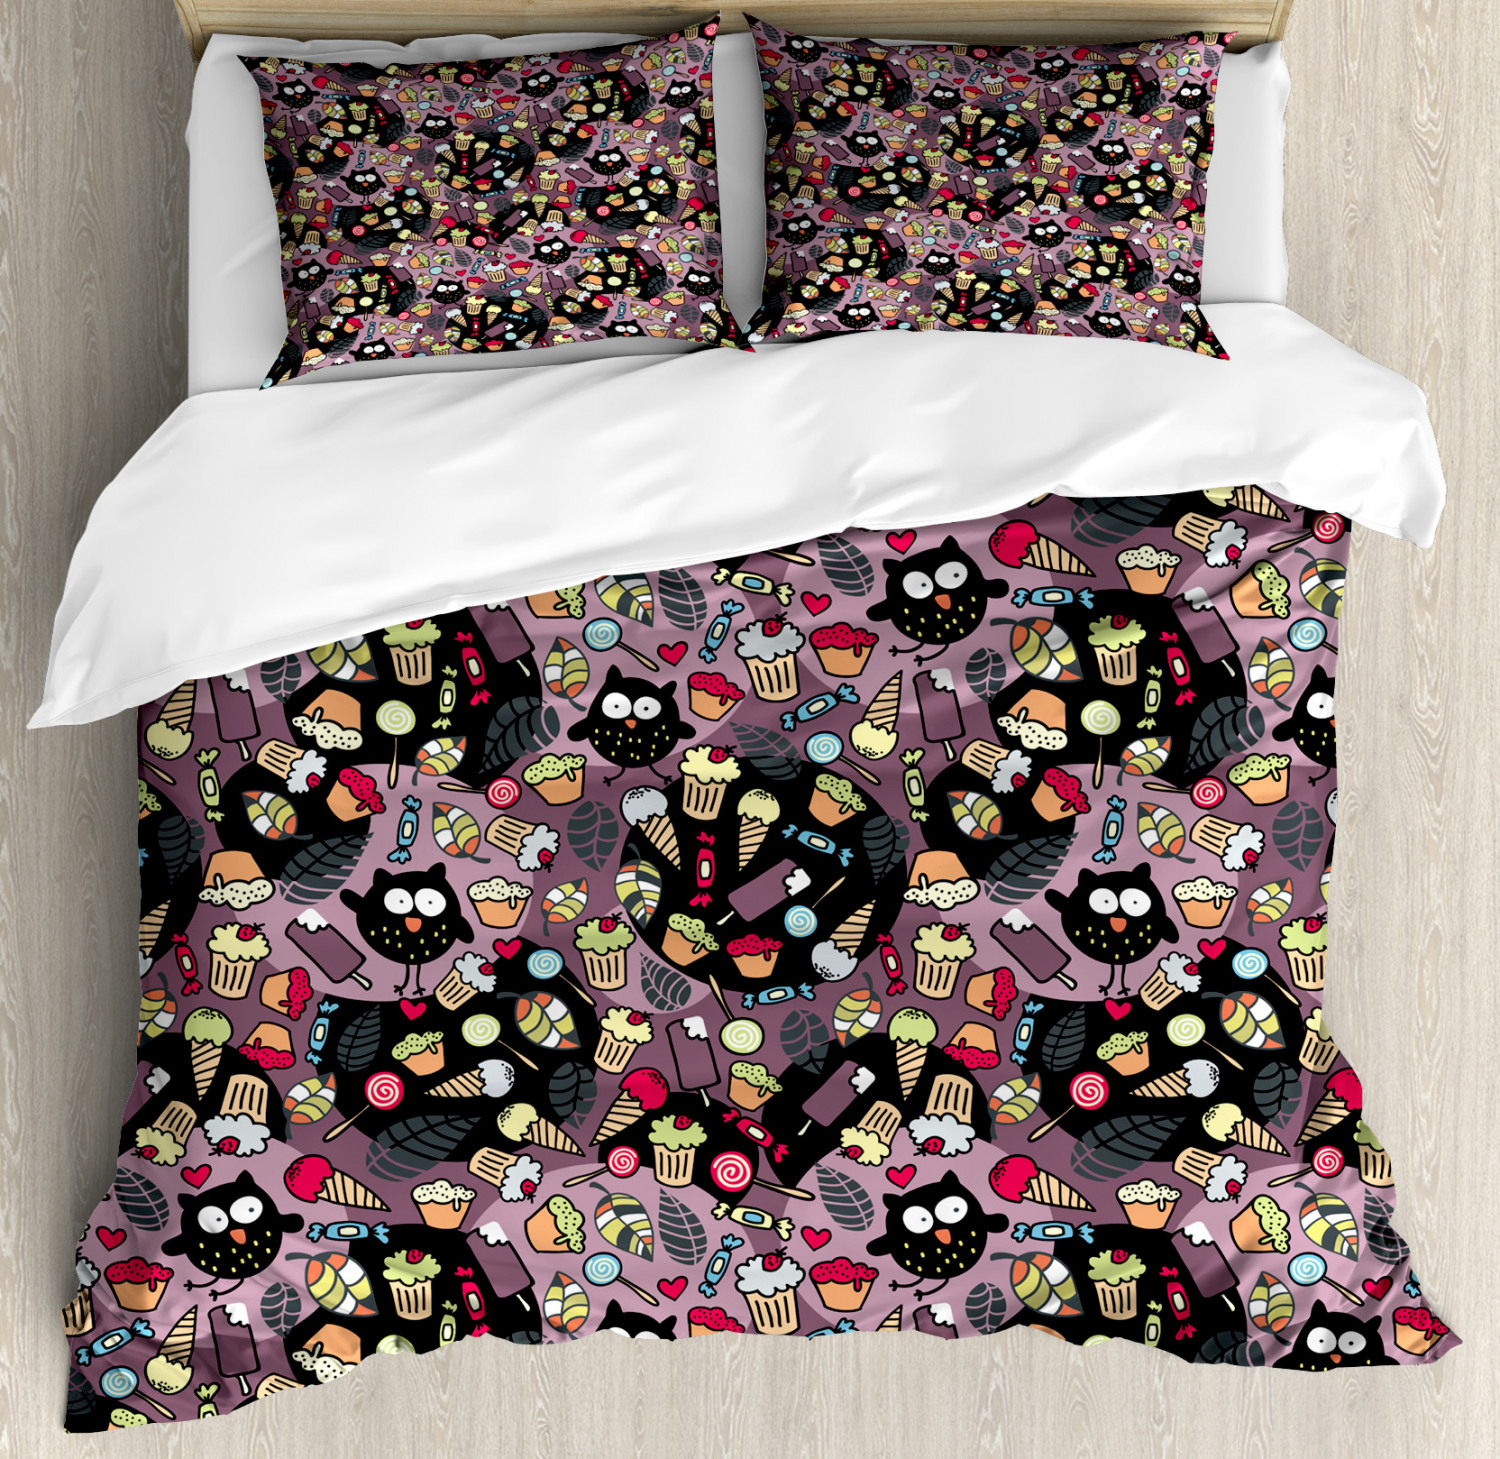 Owls Duvet Cover Set with Pillow Shams Crazy Birds Tasty Cupcakes Print